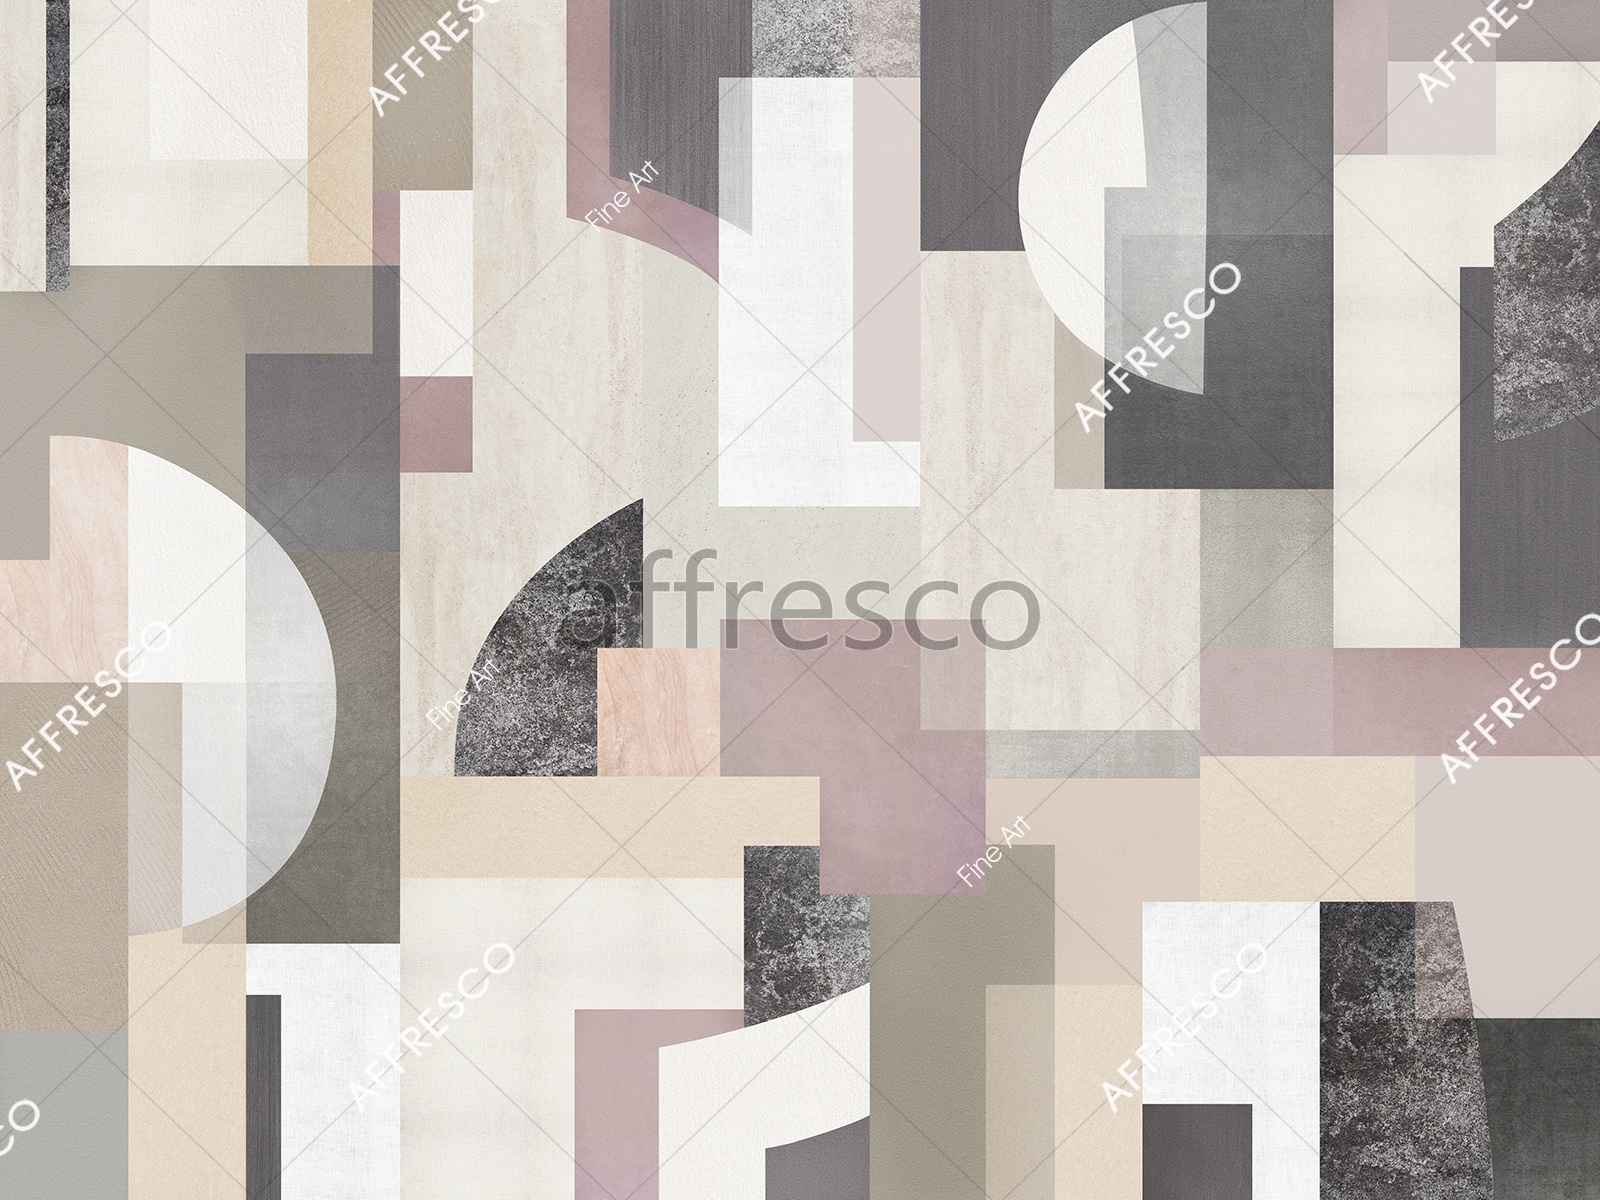 RE929-COL1 | Fine Art | Affresco Factory